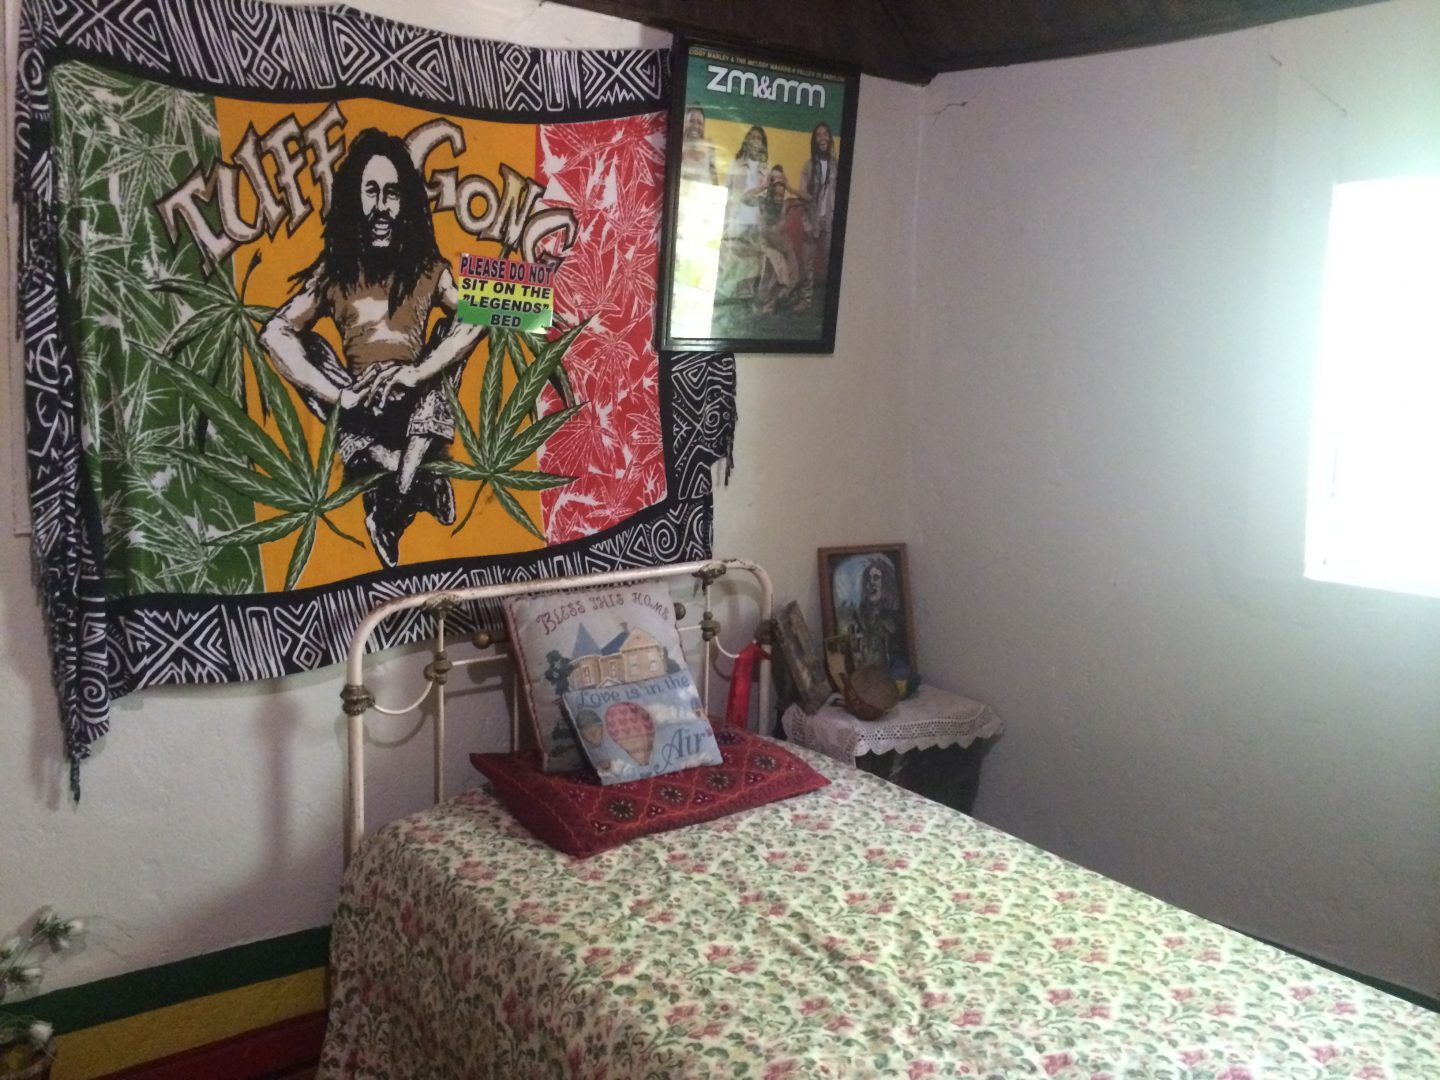 Bob Marley Mausoleum - one of my favourite places to visit in Jamaica